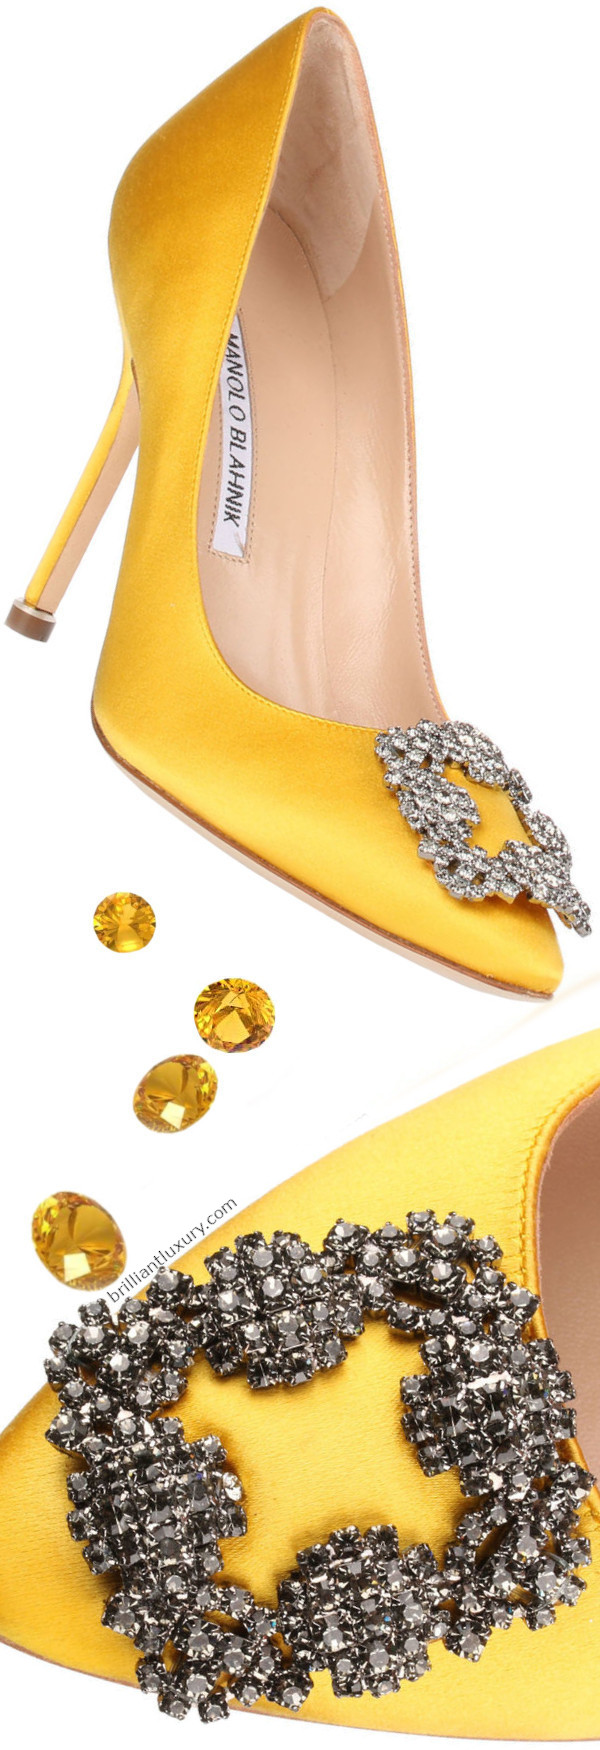 Manolo Blahnik Hangisi bejeweled yellow satin pumps